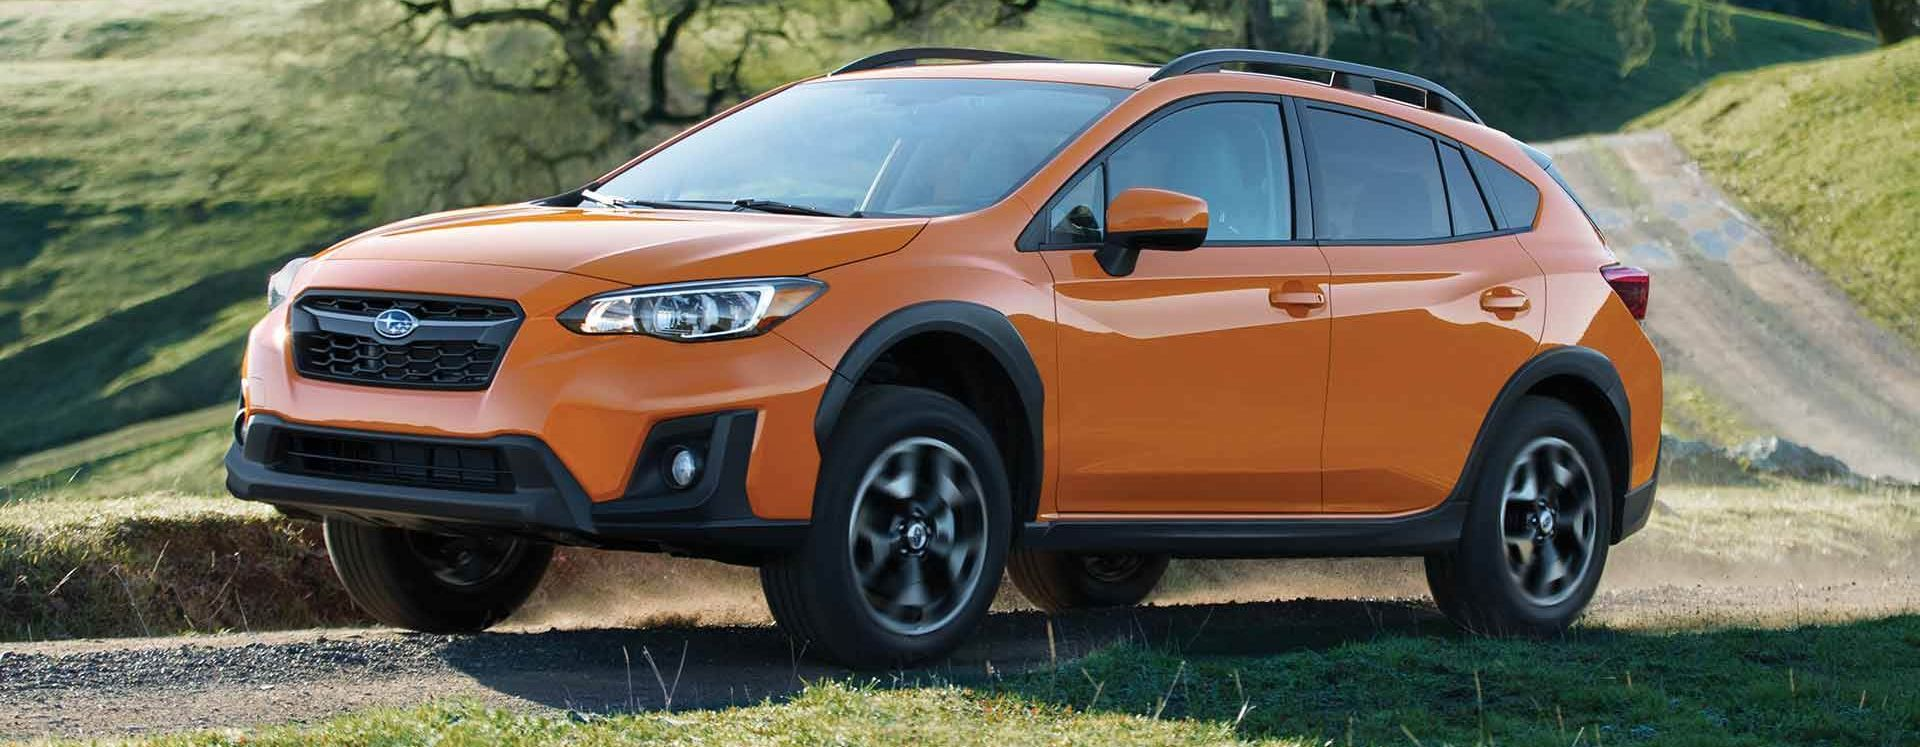 2018 Subaru Crosstrek for Sale near Sacramento, CA